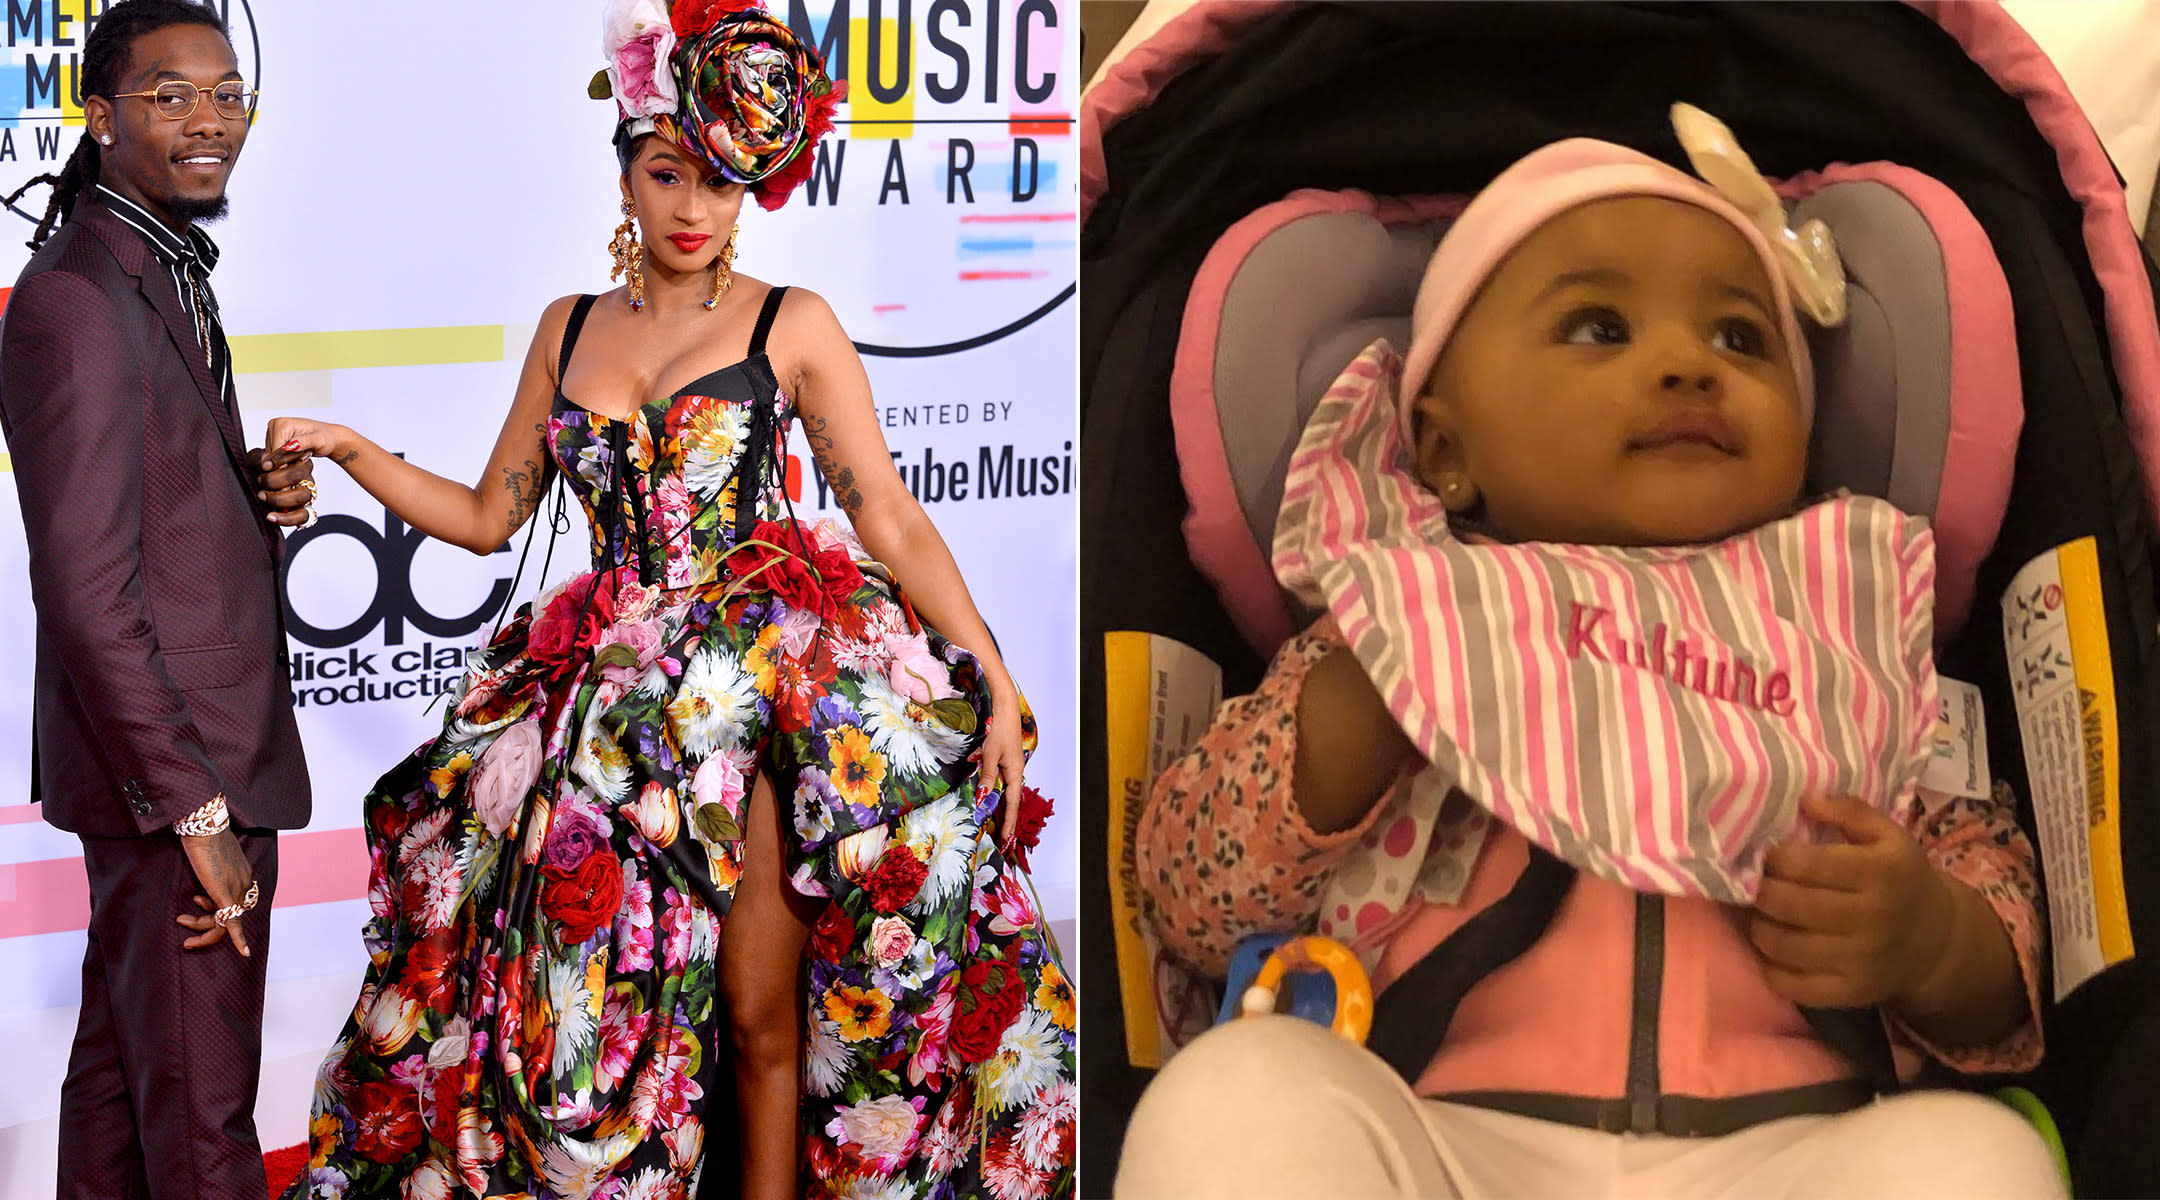 cardi b and offset name their daughter kulture